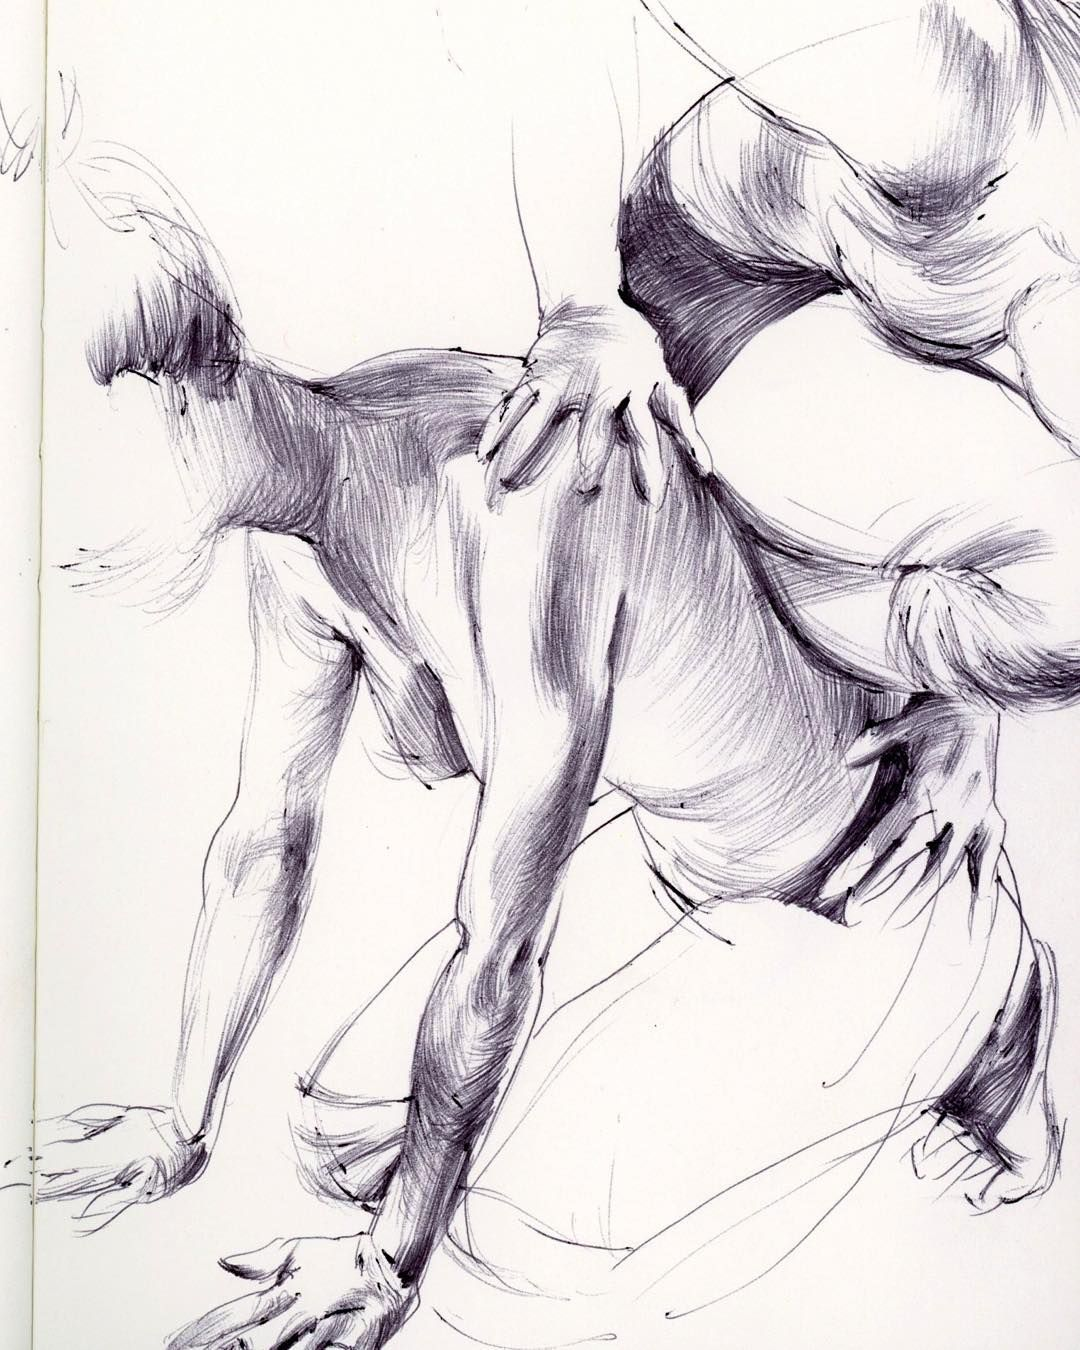 Here's another #sketch that will (most likely) make its way to canvas. Prepping a body of work that will hone in its focus on the majestic expressiveness of the human form.  0.5mm #ballpoint #figurestudies #dancers by taylurk